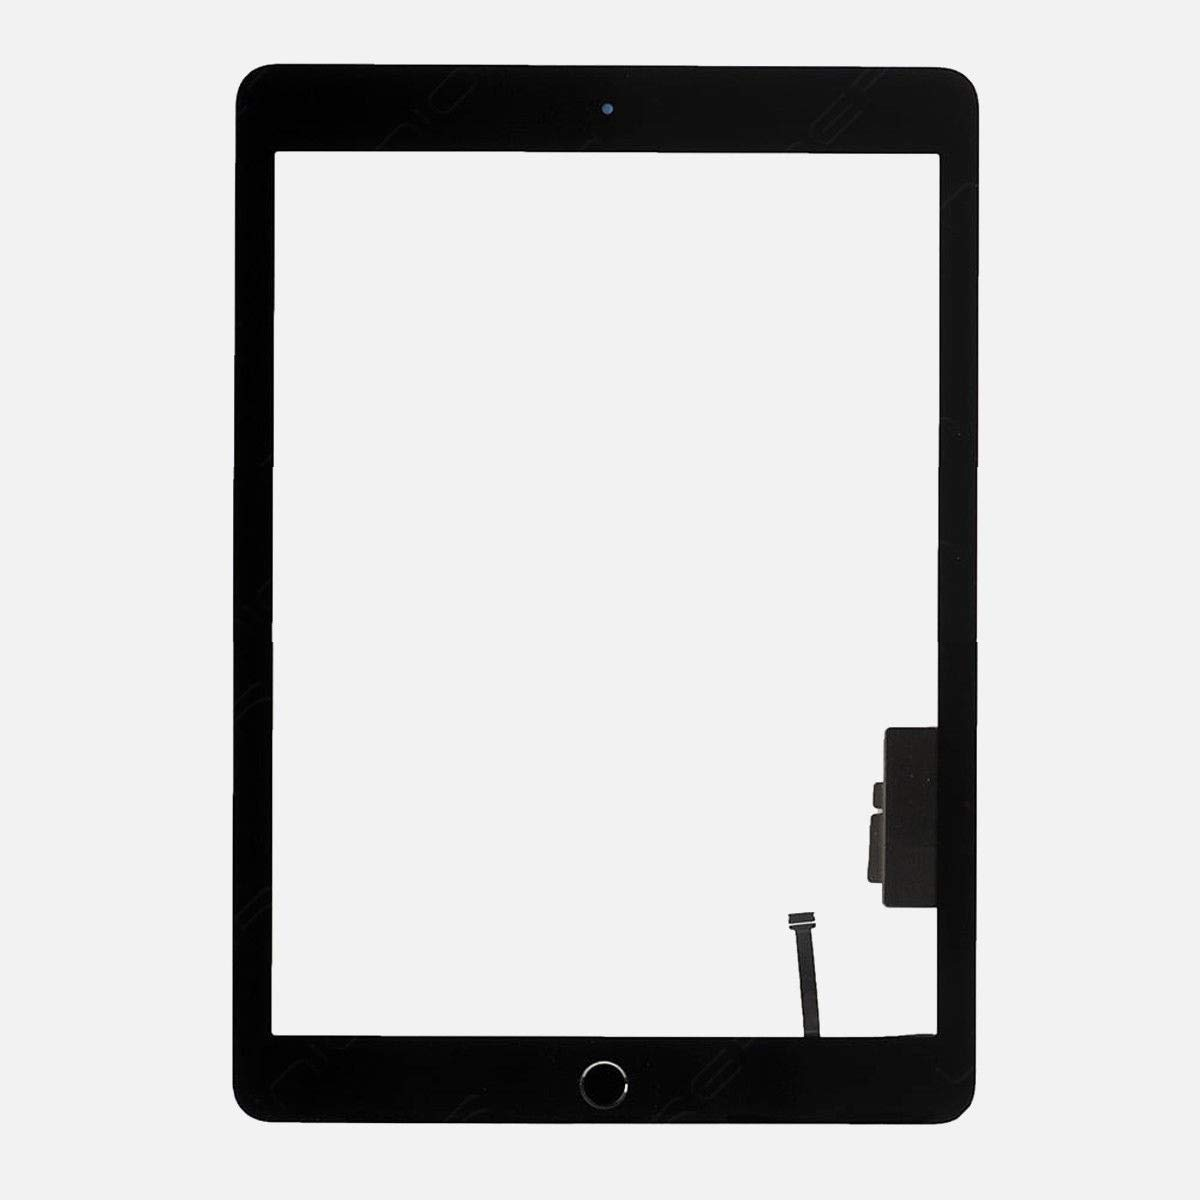 BESTeck Black Digitizer Repair Replacement Kit for iPad 9.7'' (2018) iPad 6 6th Gen A1893 A1954 Touch Screen Digitizer with Home Button, Pre-installed Adhesive and Tools